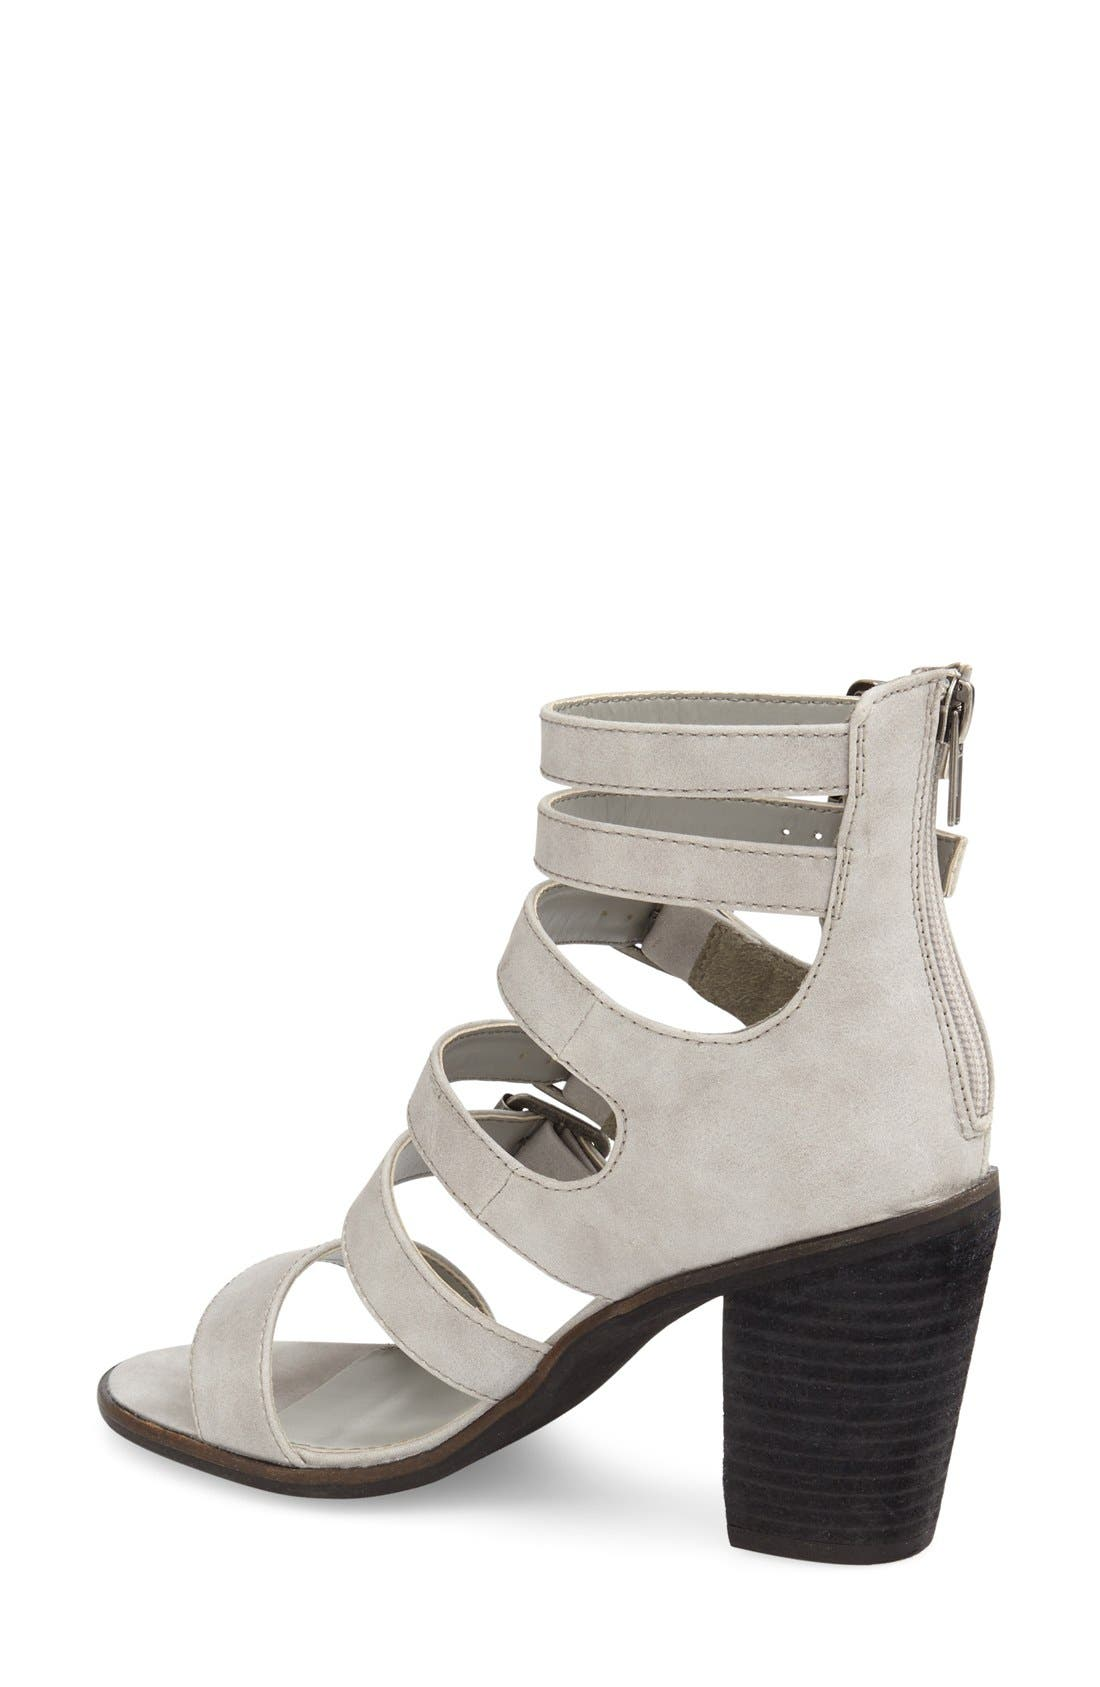 Alternate Image 2  - Rebels 'Yandy' Strappy Block Heel Sandal (Women)